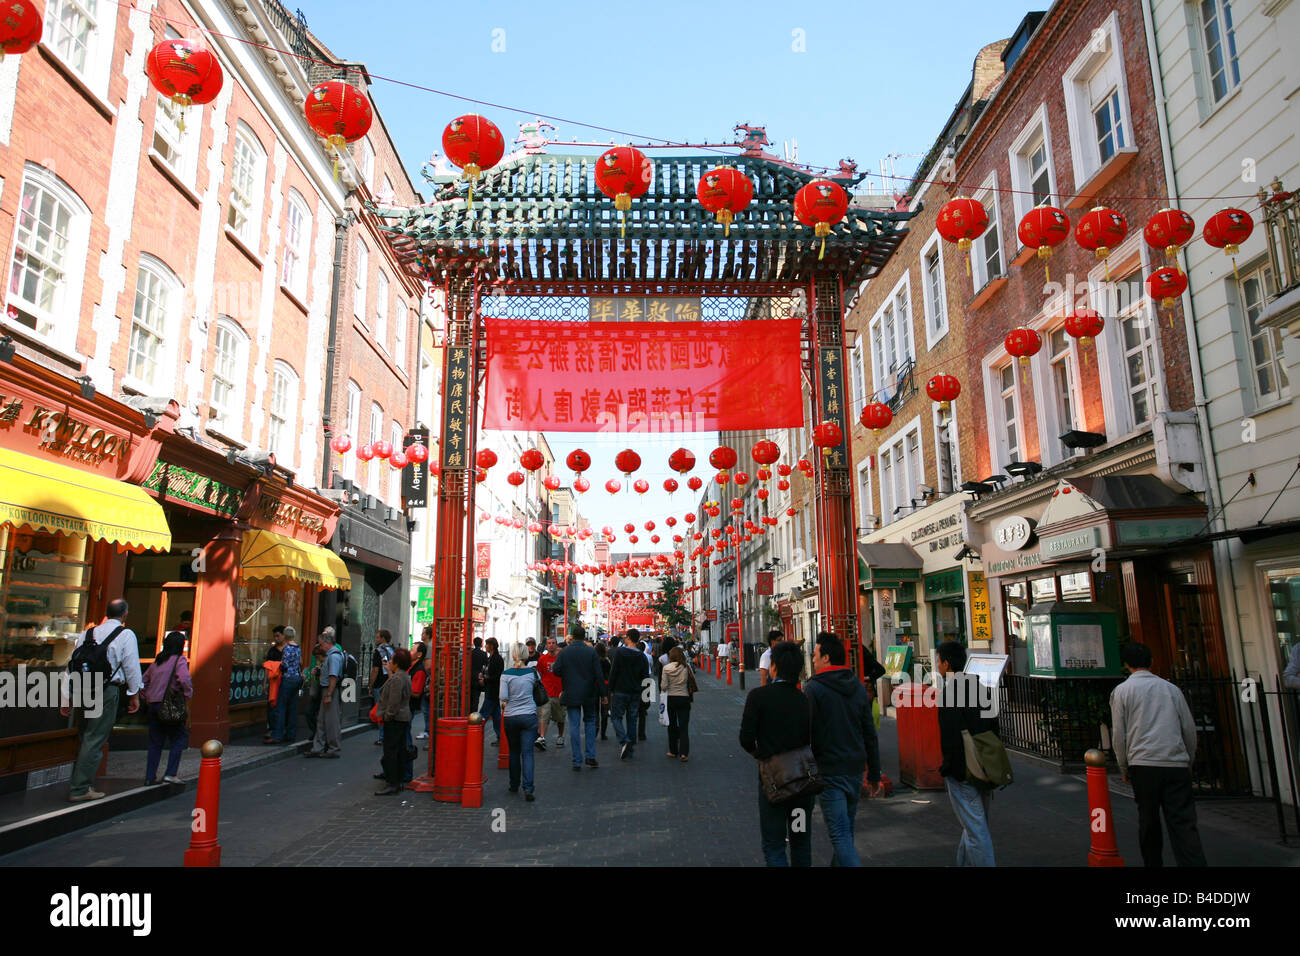 Tourists pass under the main red gateway entrance to China Town in London's West End area England UK - Stock Image